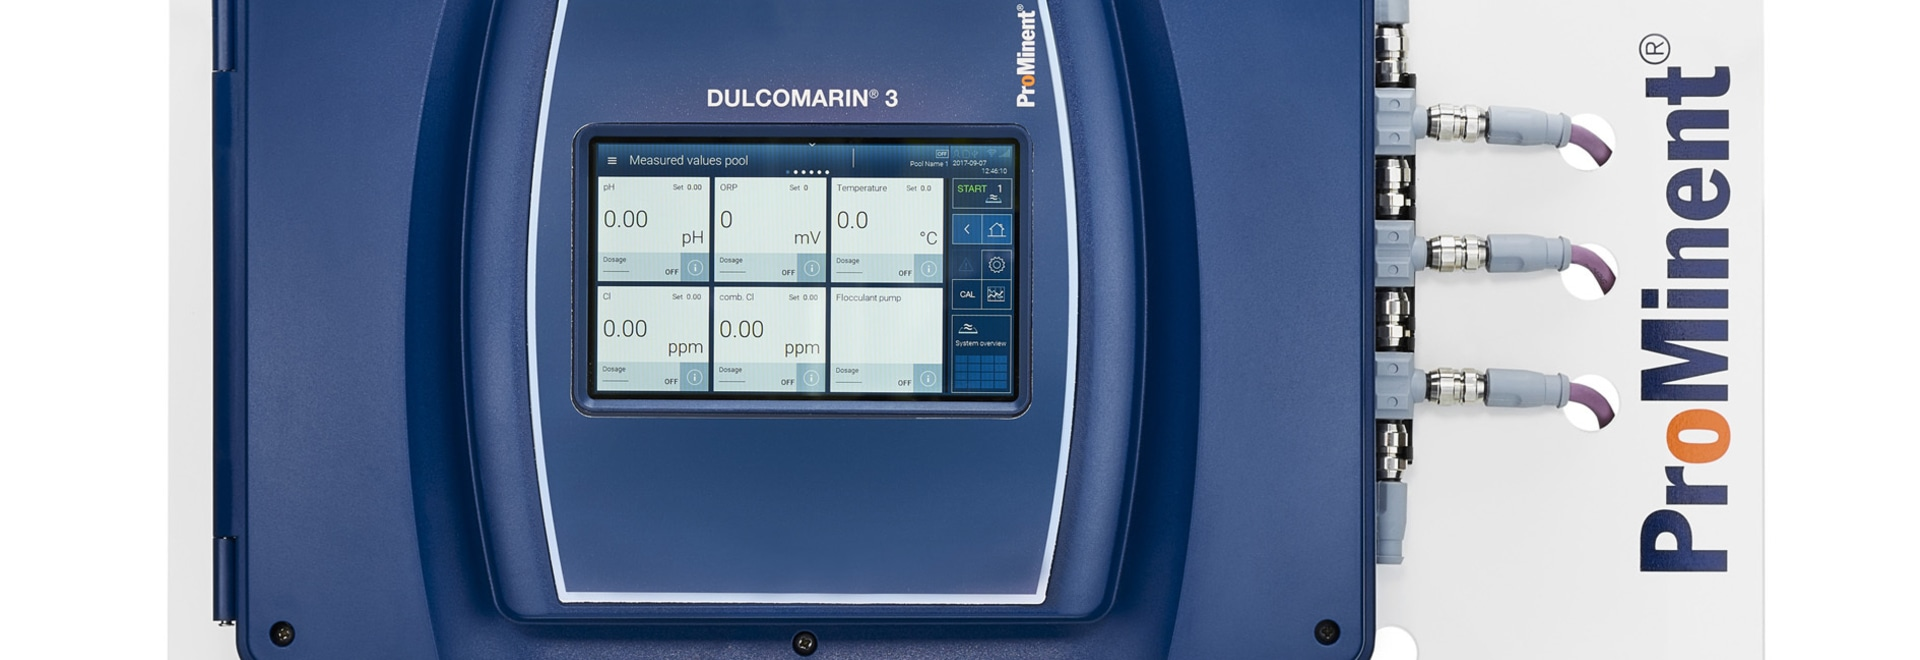 DULCOMARIN® 3 with touch display for simple operation with interactive design and commissioning wizard, which can also be operated via a web browser. Access to all functions from any internet-compa...